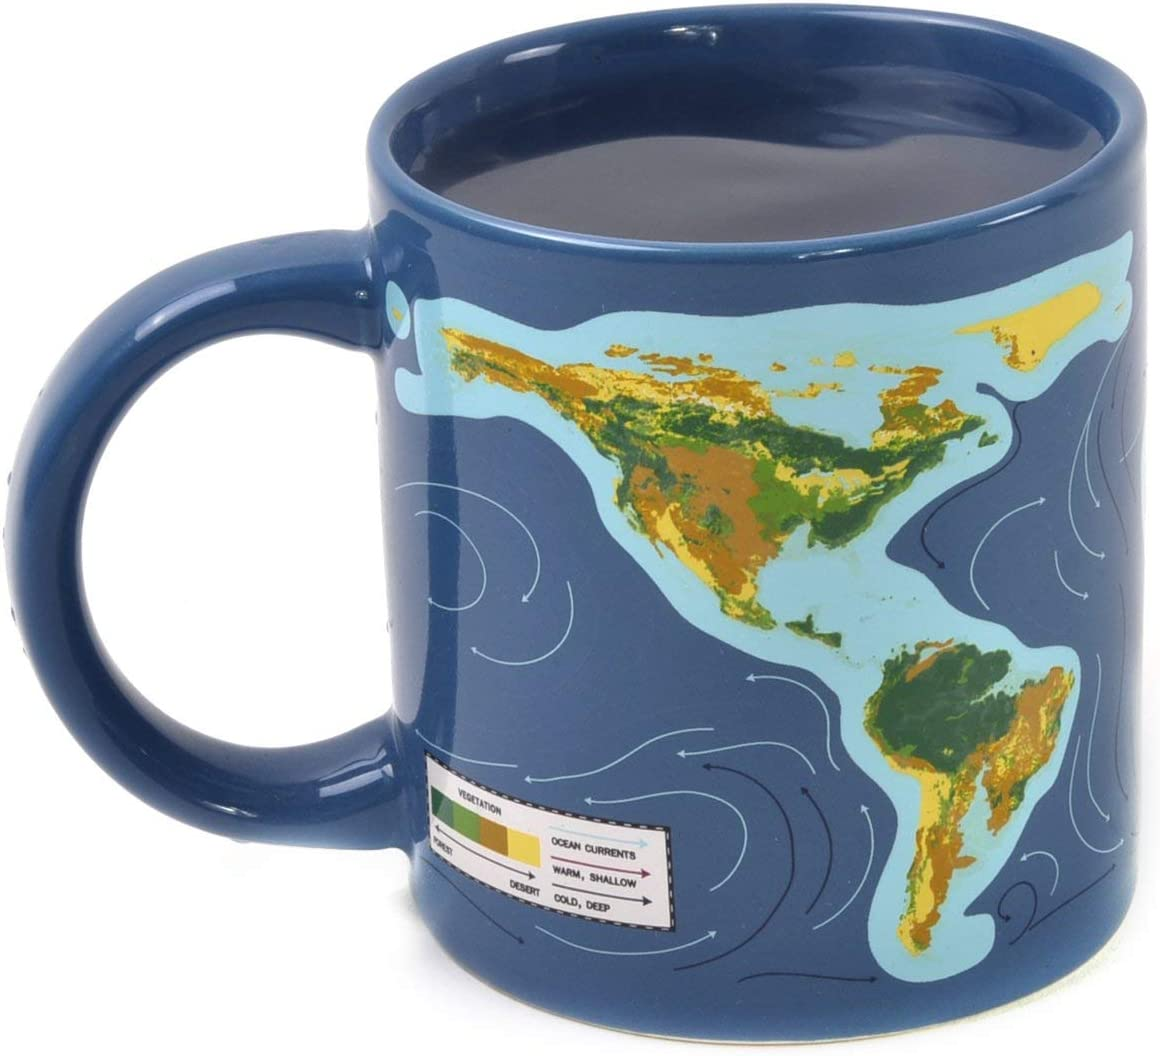 Climate Change Disappearing Coffee Mug - Add Hot Liquid and Watch What Will Happen When The Ice Caps Melt - Comes in a Fun Gift Box - by The Unemployed Philosophers Guild